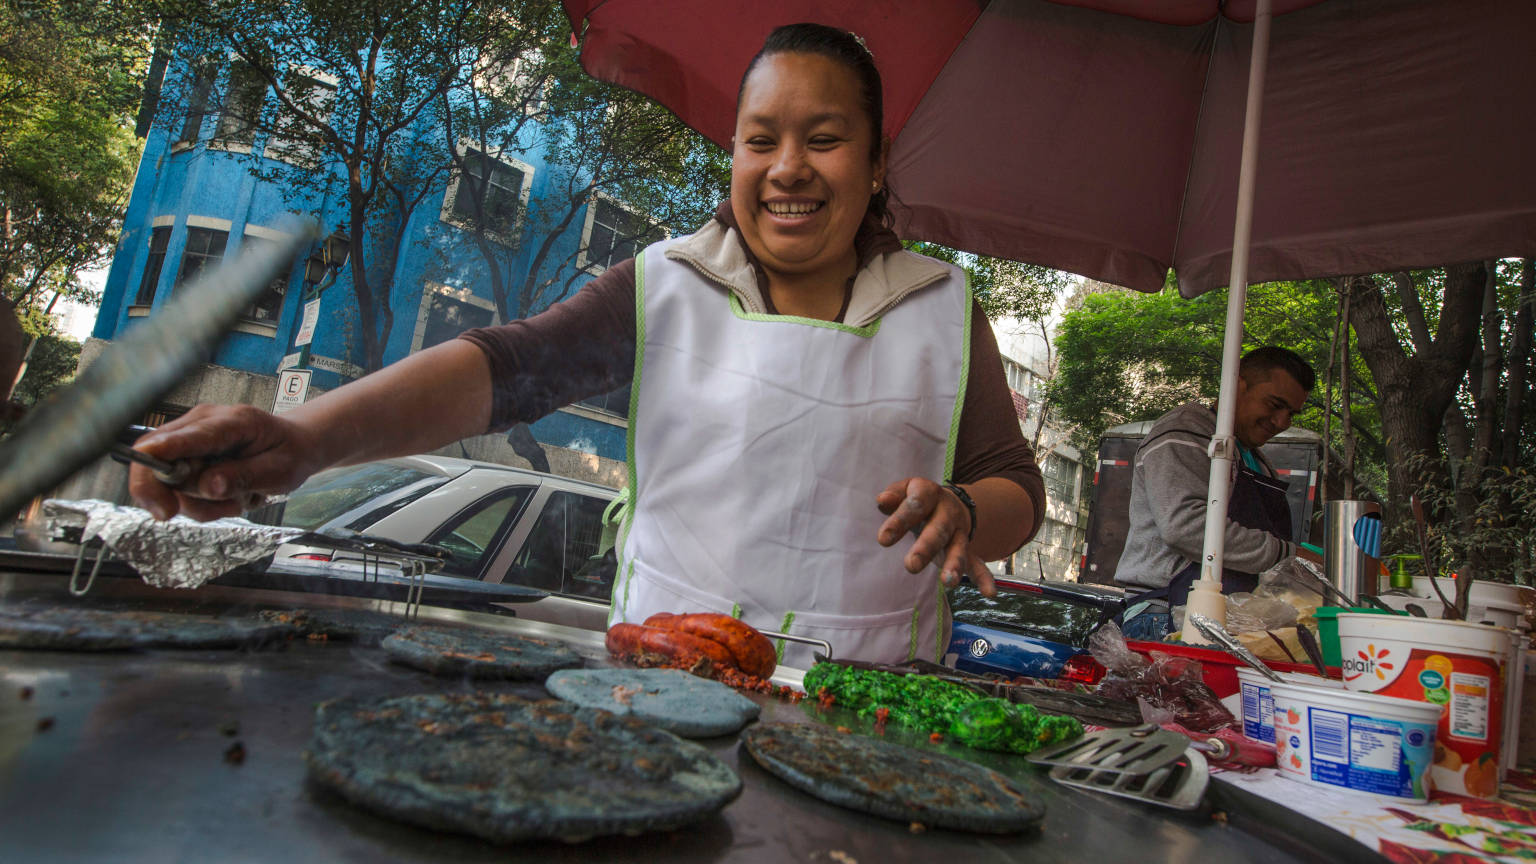 Mexico-Mexico-City-Food-Stand-Taco-Vendors-Cooking-Oana-Dragan